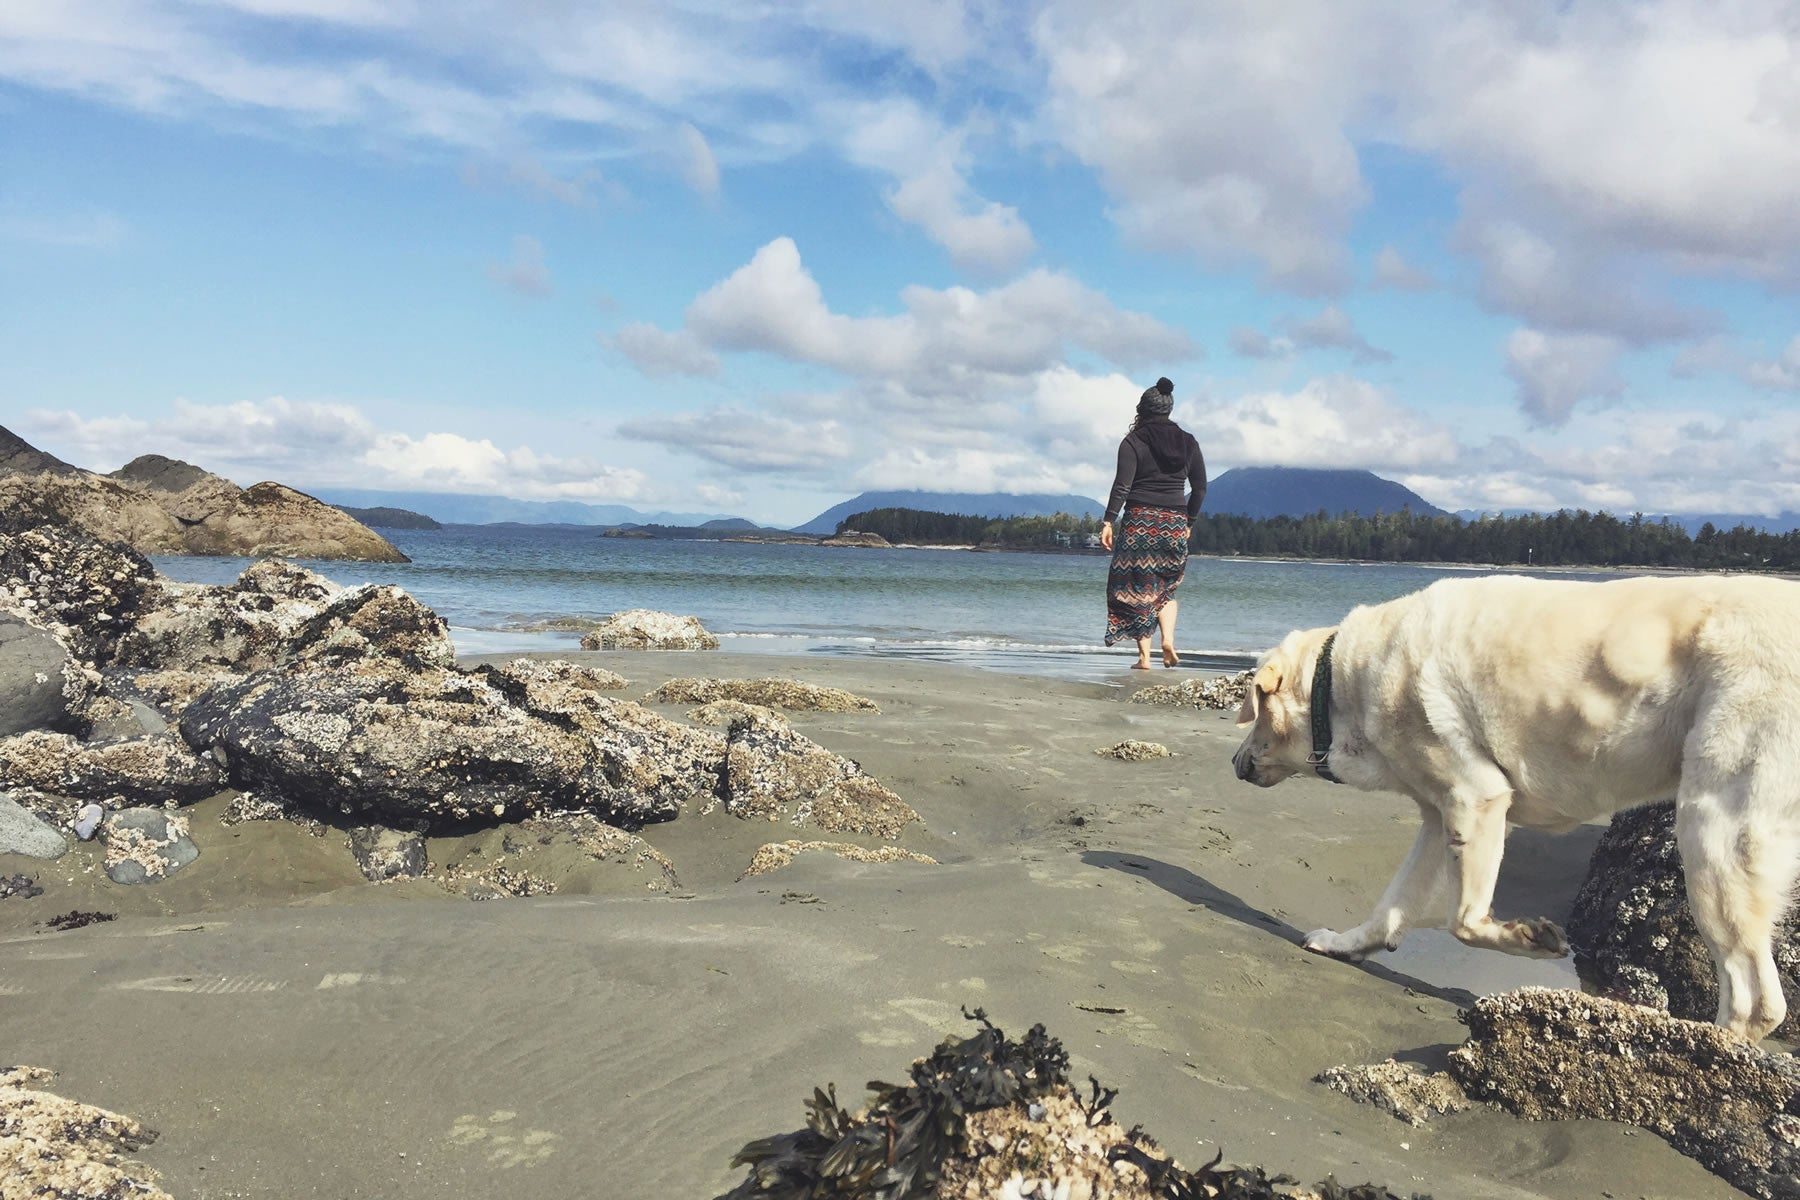 Baylor and Mallory explore tide pools on the beach.